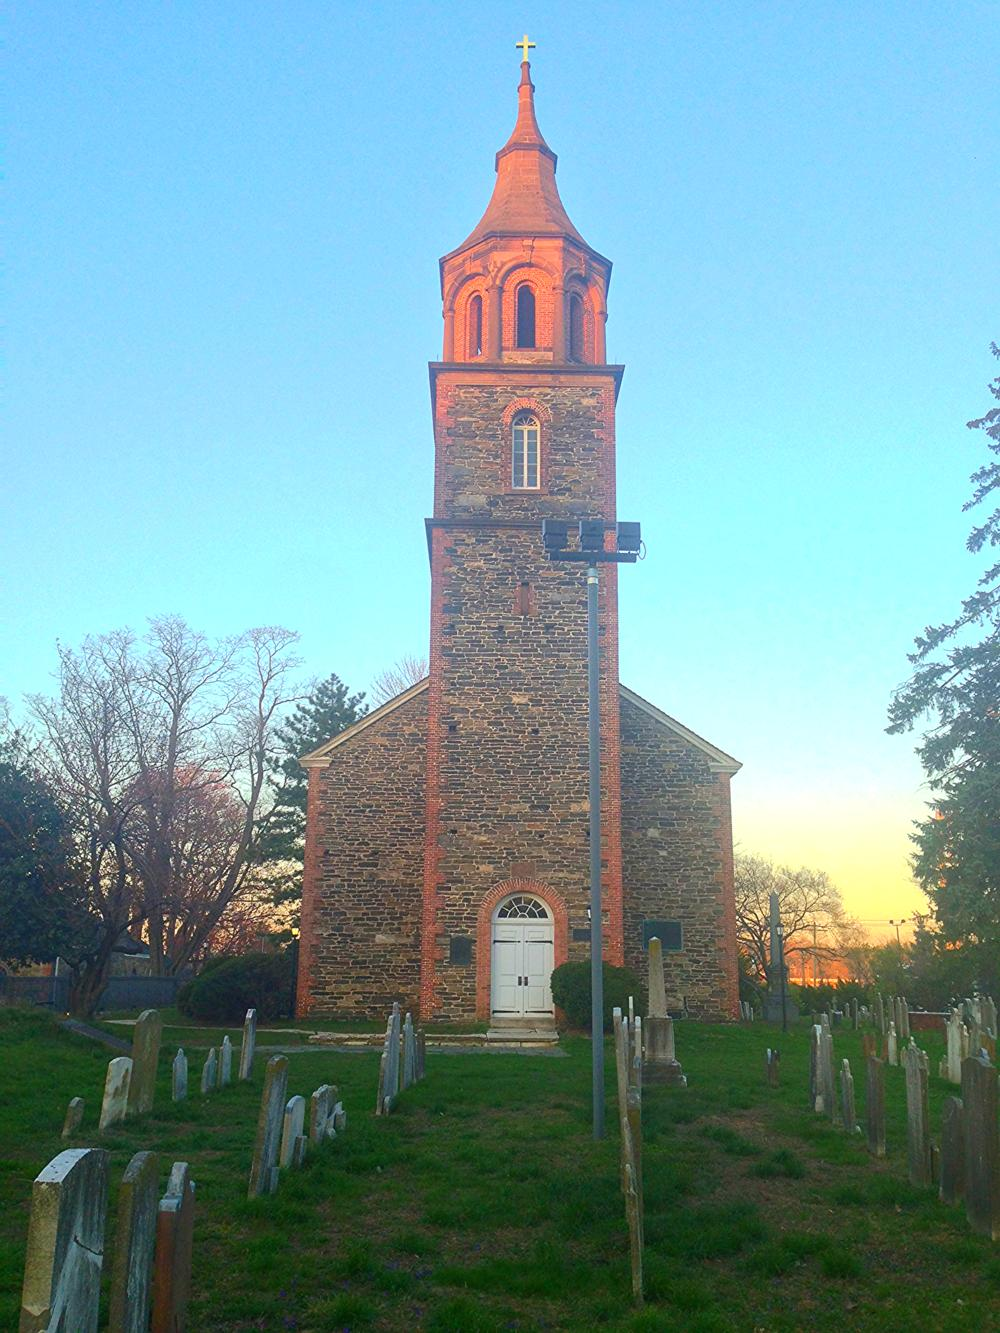 St Paul's Church, built in 1764 located in today's Mount Vernon, NY..  It was called the Church of Eastchester until 1795.